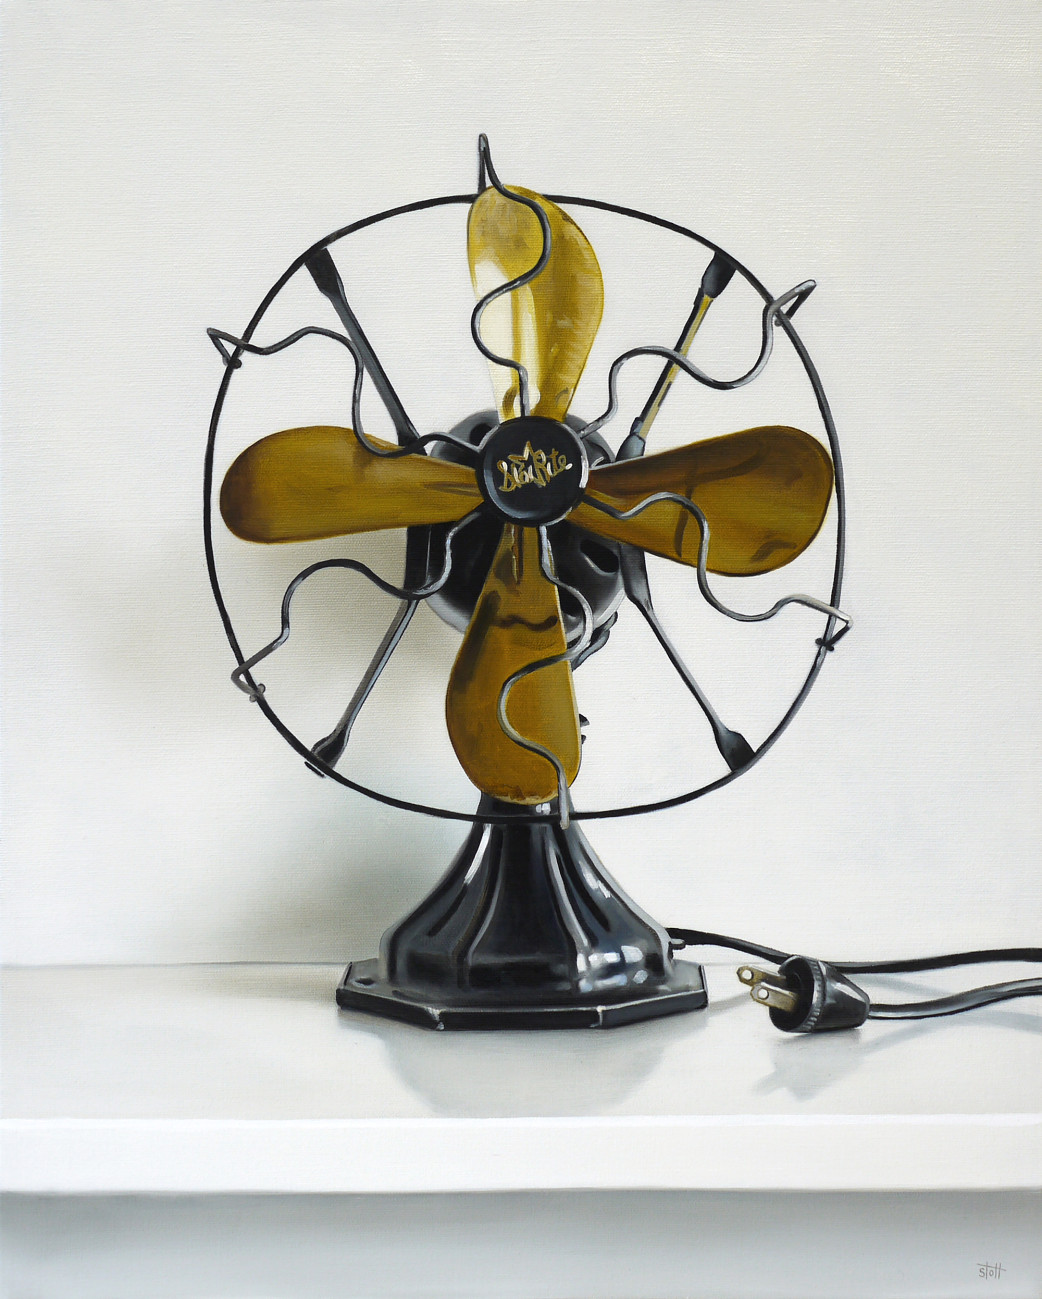 Vintage Star Rite Electric Fan Oil Painting by Christopher Stott